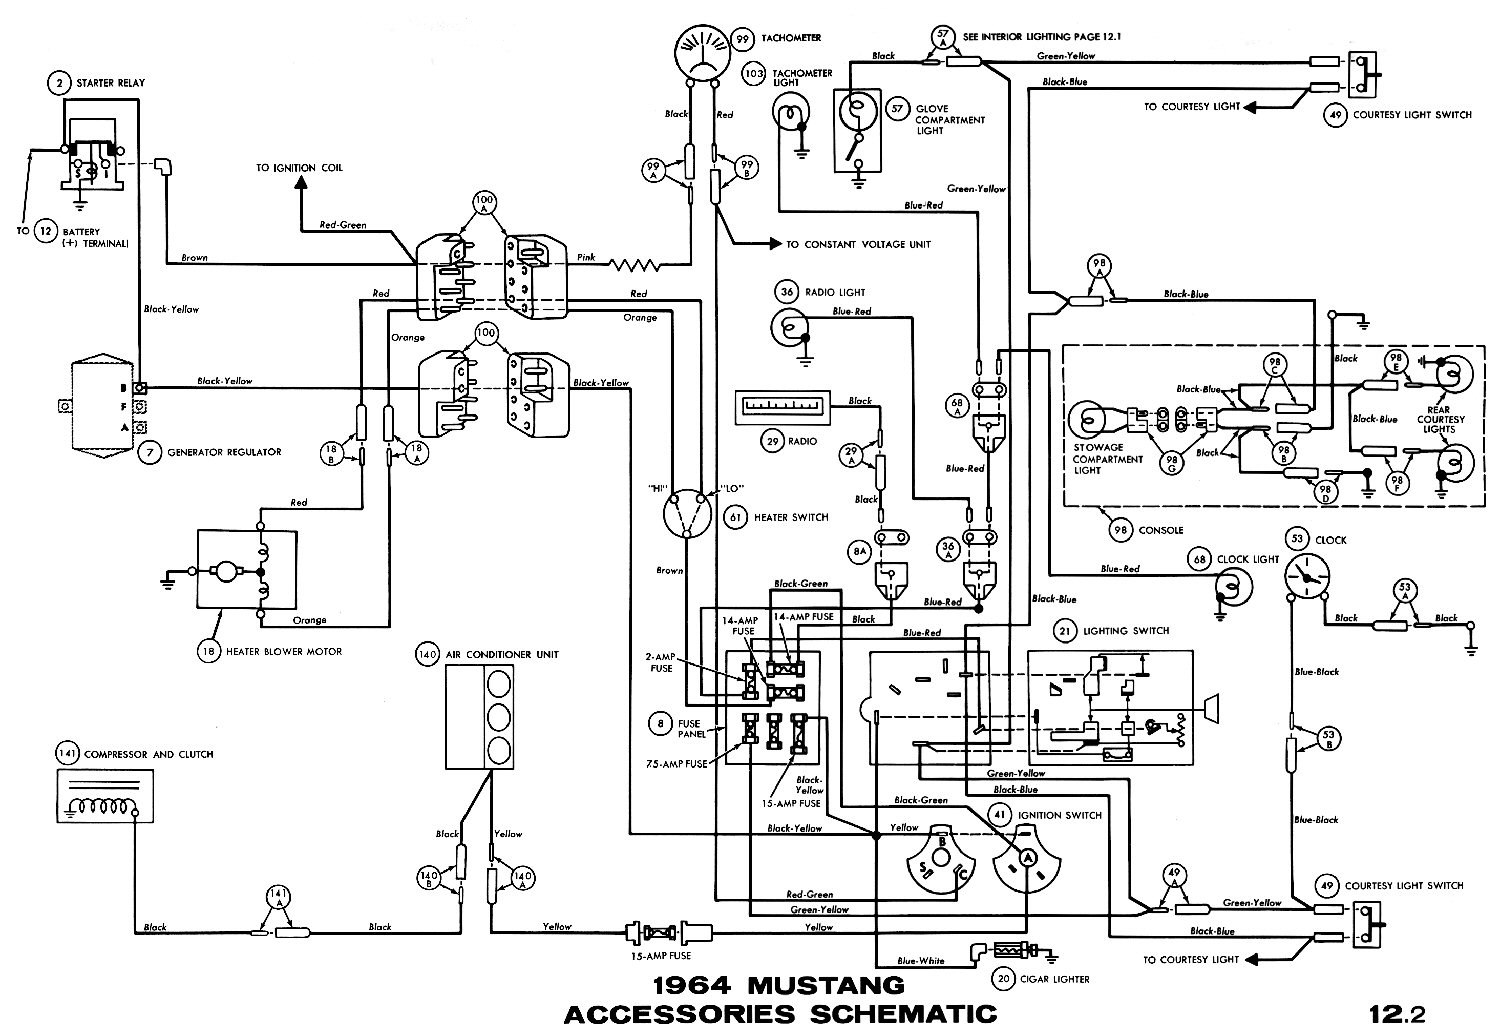 hight resolution of 64 1 2 mustang fuse box wiring diagram blogs 97 ford mustang fuse box diagram 1964 1 2 mustang fuse box diagram